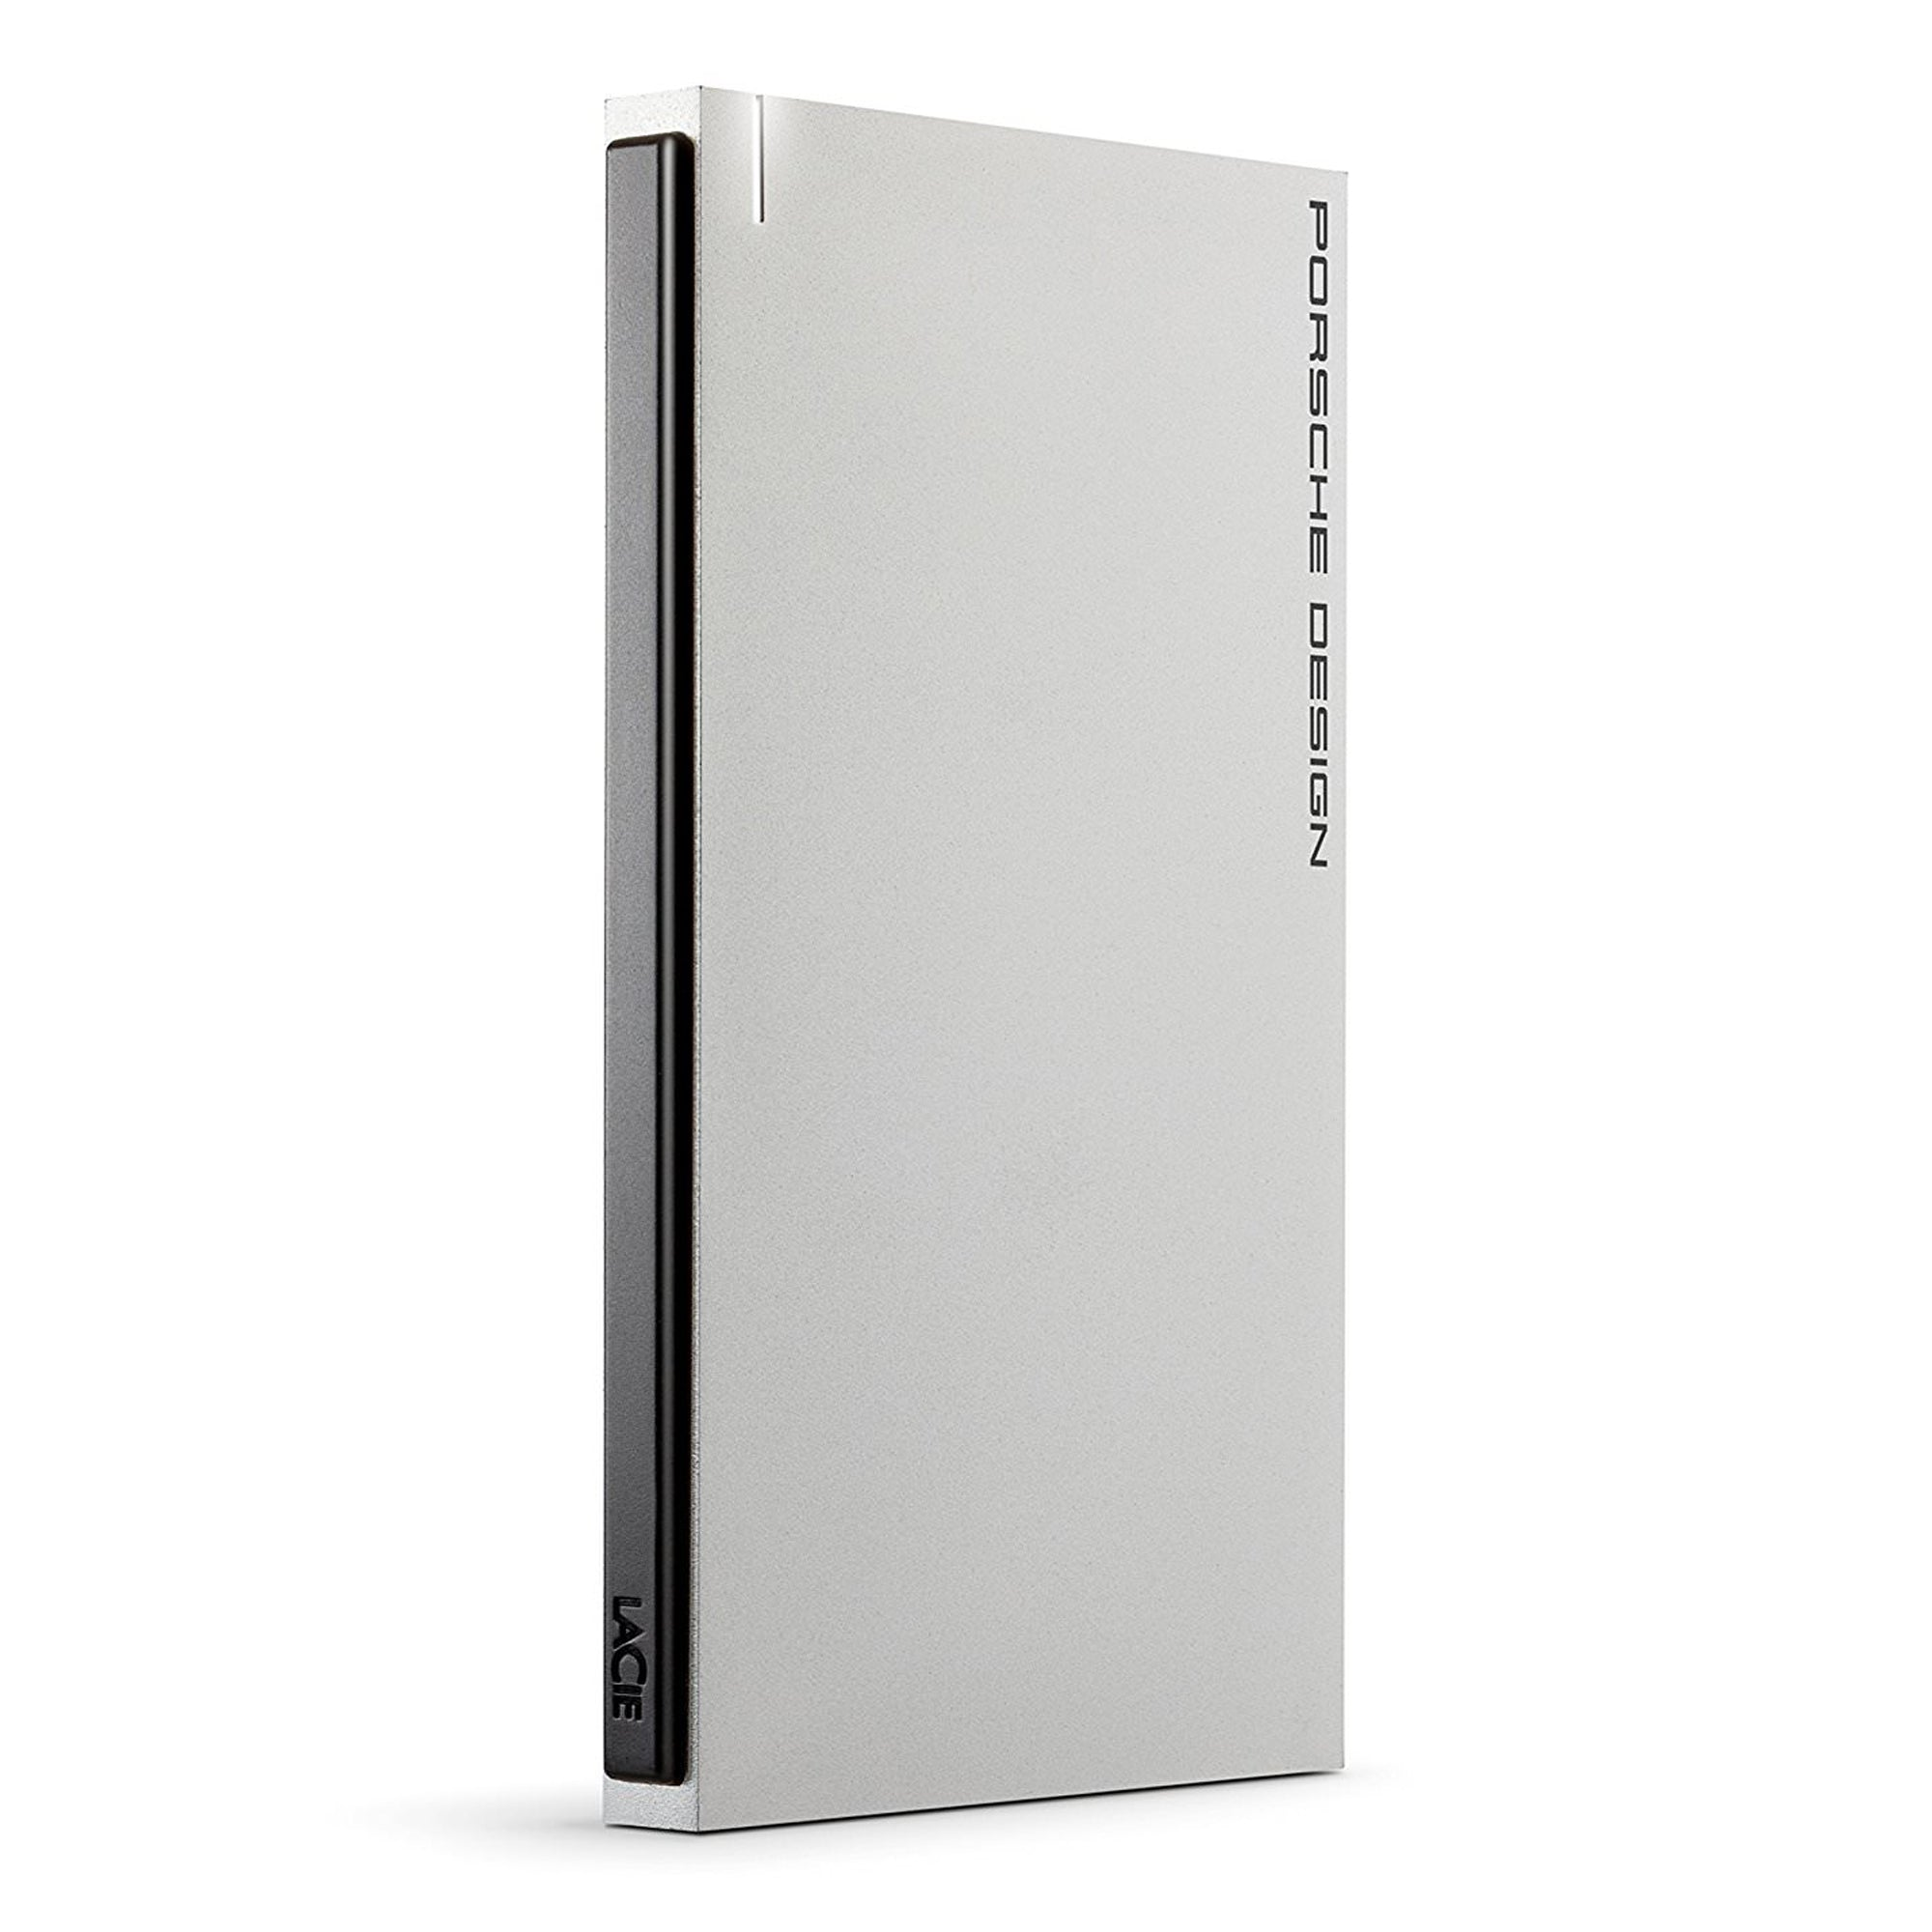 LaCie USB C Porsche Design MAC Portable 1TB Hard Drive